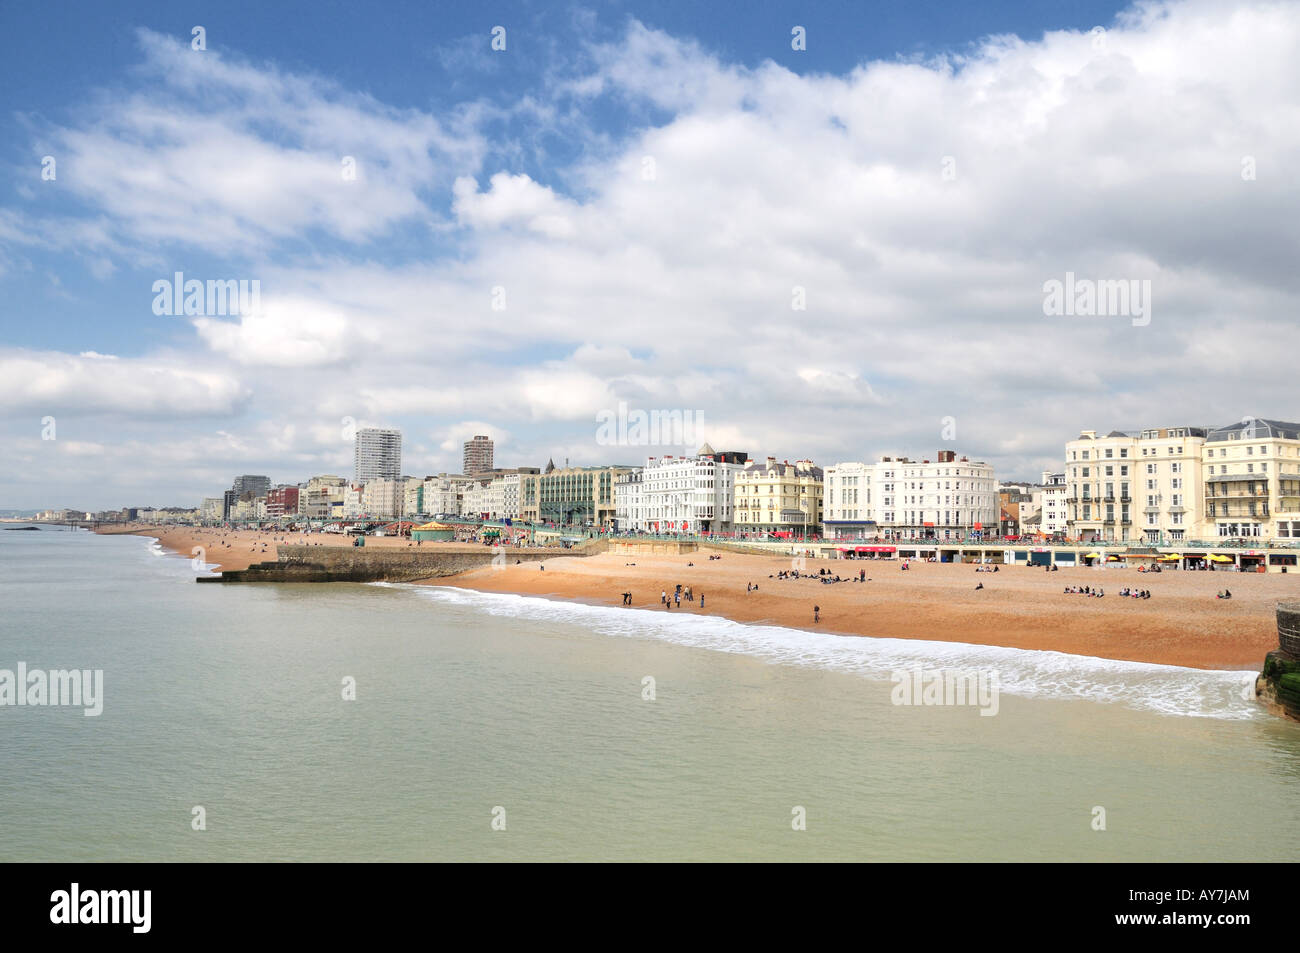 Brighton beach and seafront - a view from the Brighton Pier, East Sussex, England - Stock Image